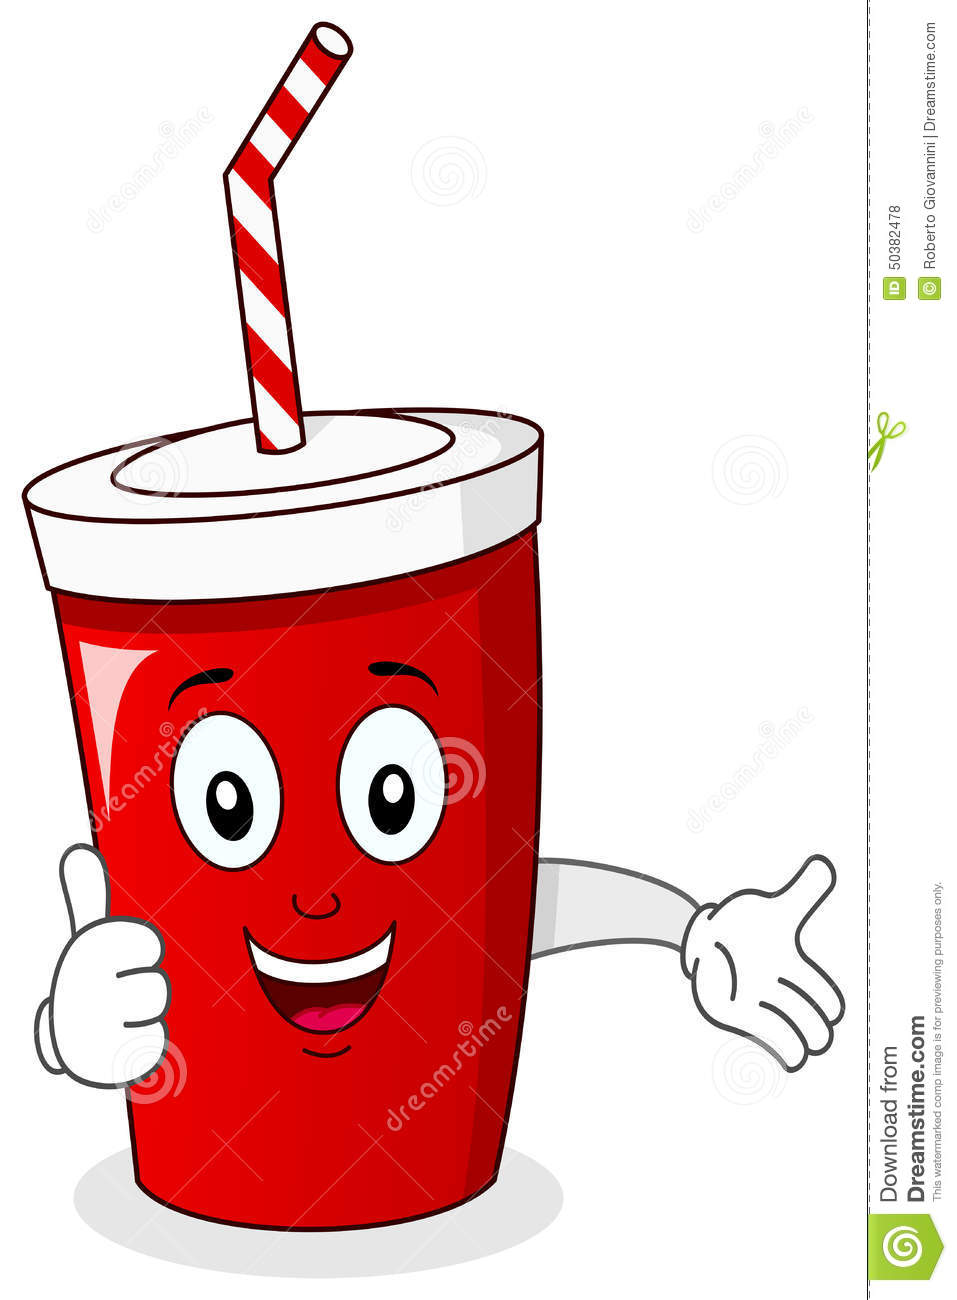 Cheerful Paper Soda Drink Character Stock Vector - Image: 50382478